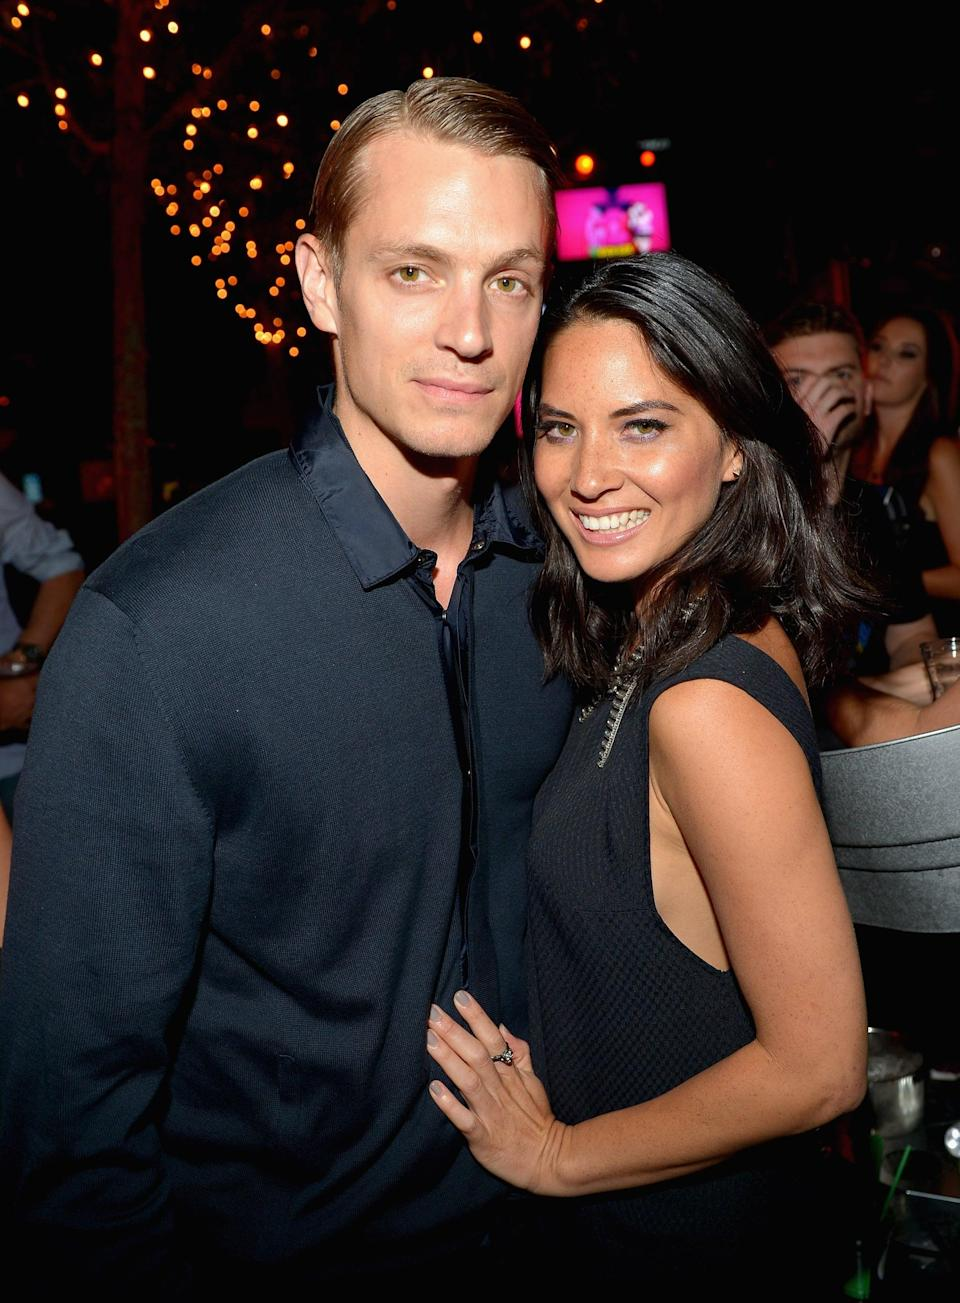 """<p><a href=""""https://www.usmagazine.com/celebrity-news/news/olivia-munn-joel-kinnaman-split-after-two-years-2014294/"""" class=""""link rapid-noclick-resp"""" rel=""""nofollow noopener"""" target=""""_blank"""" data-ylk=""""slk:Olivia began romancing the fellow actor"""">Olivia began romancing the fellow actor</a> in March 2012, but they called it quits after two years together. A source told <strong>Us Weekly</strong> that the reason for their split had to do with distance, since Joel was filming in Toronto and Olivia was in LA at the time.</p>"""